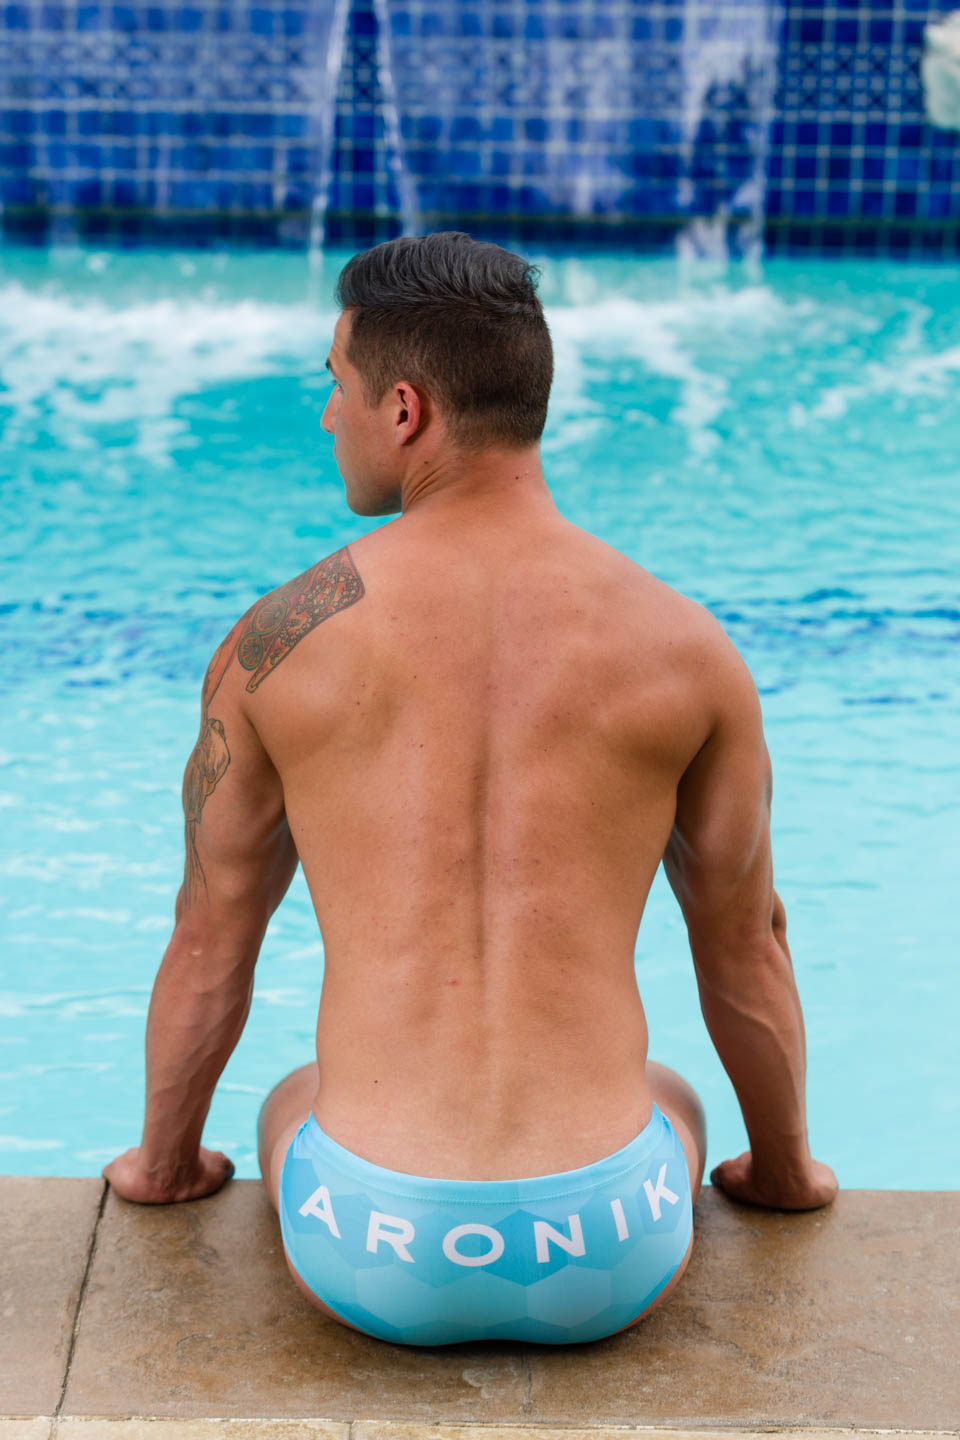 Luke models Aronik Uinta Blue swimwear